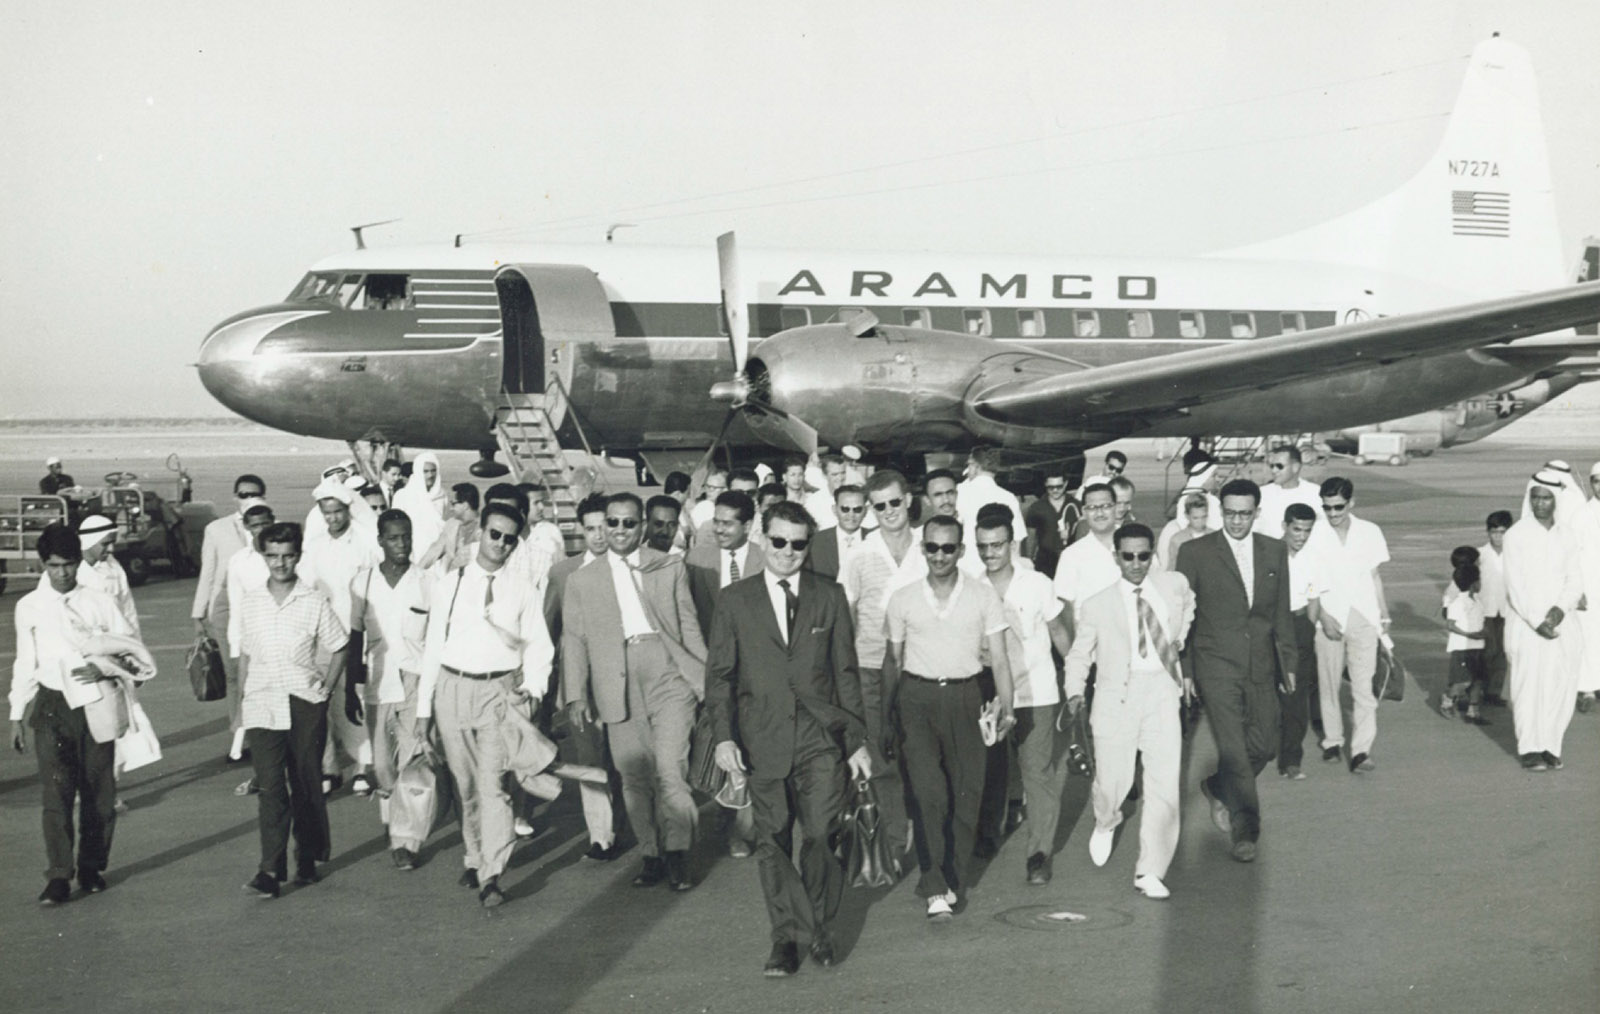 A group of Aramco recruits arriving in Saudi Arabia, 1950s